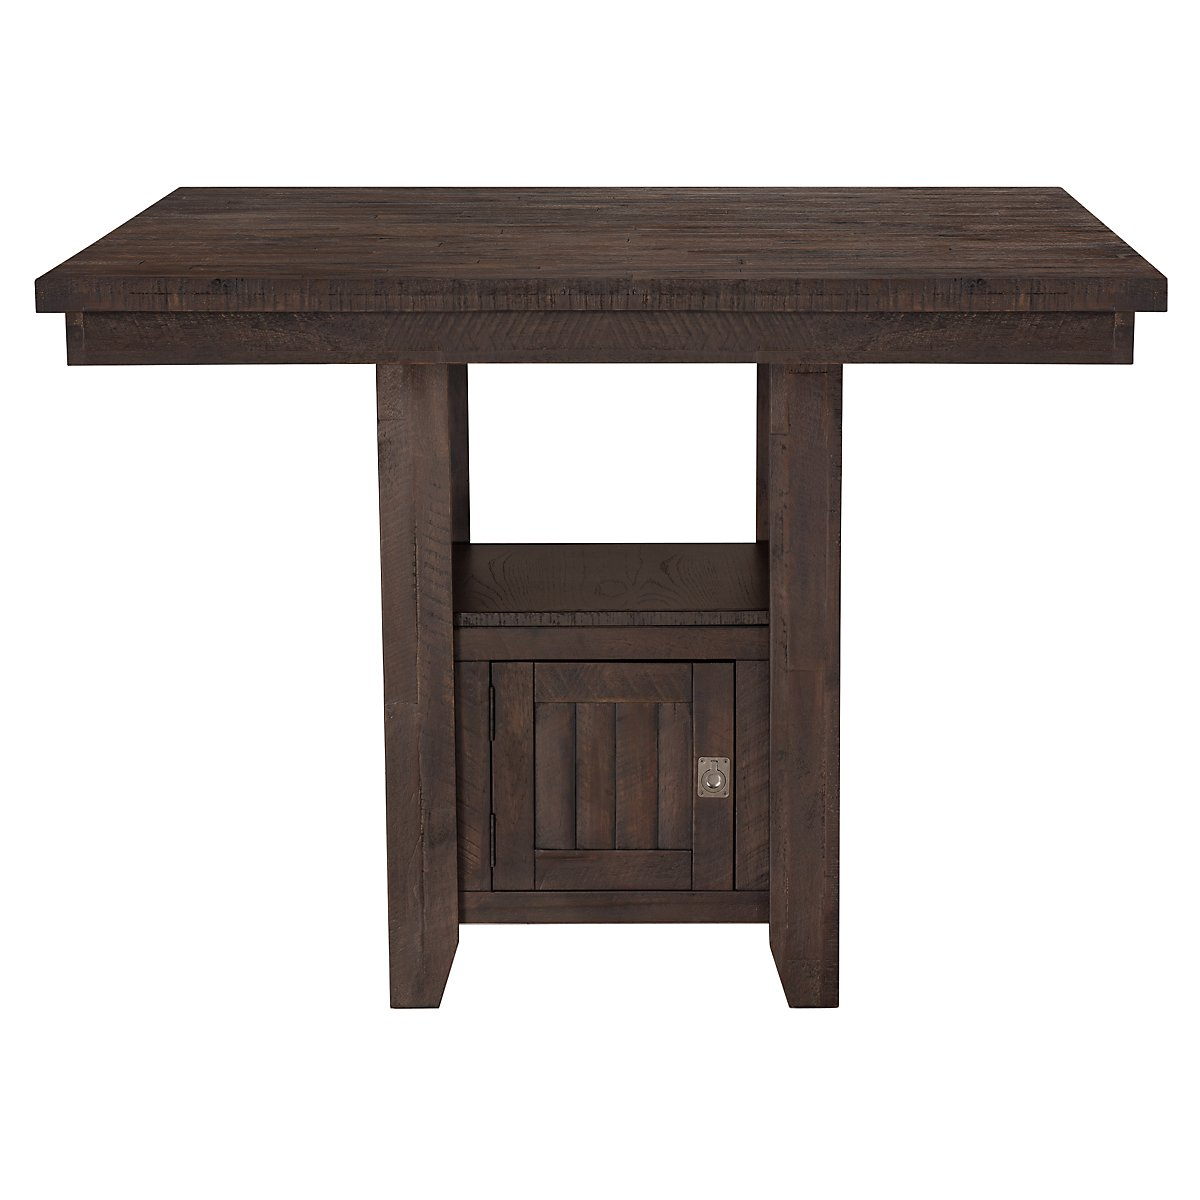 kona grove dark tone high dining table harper round wood and metal accent nesting tables hardwood door threshold sliding barn closet doors nautical ornaments rustic coffee for